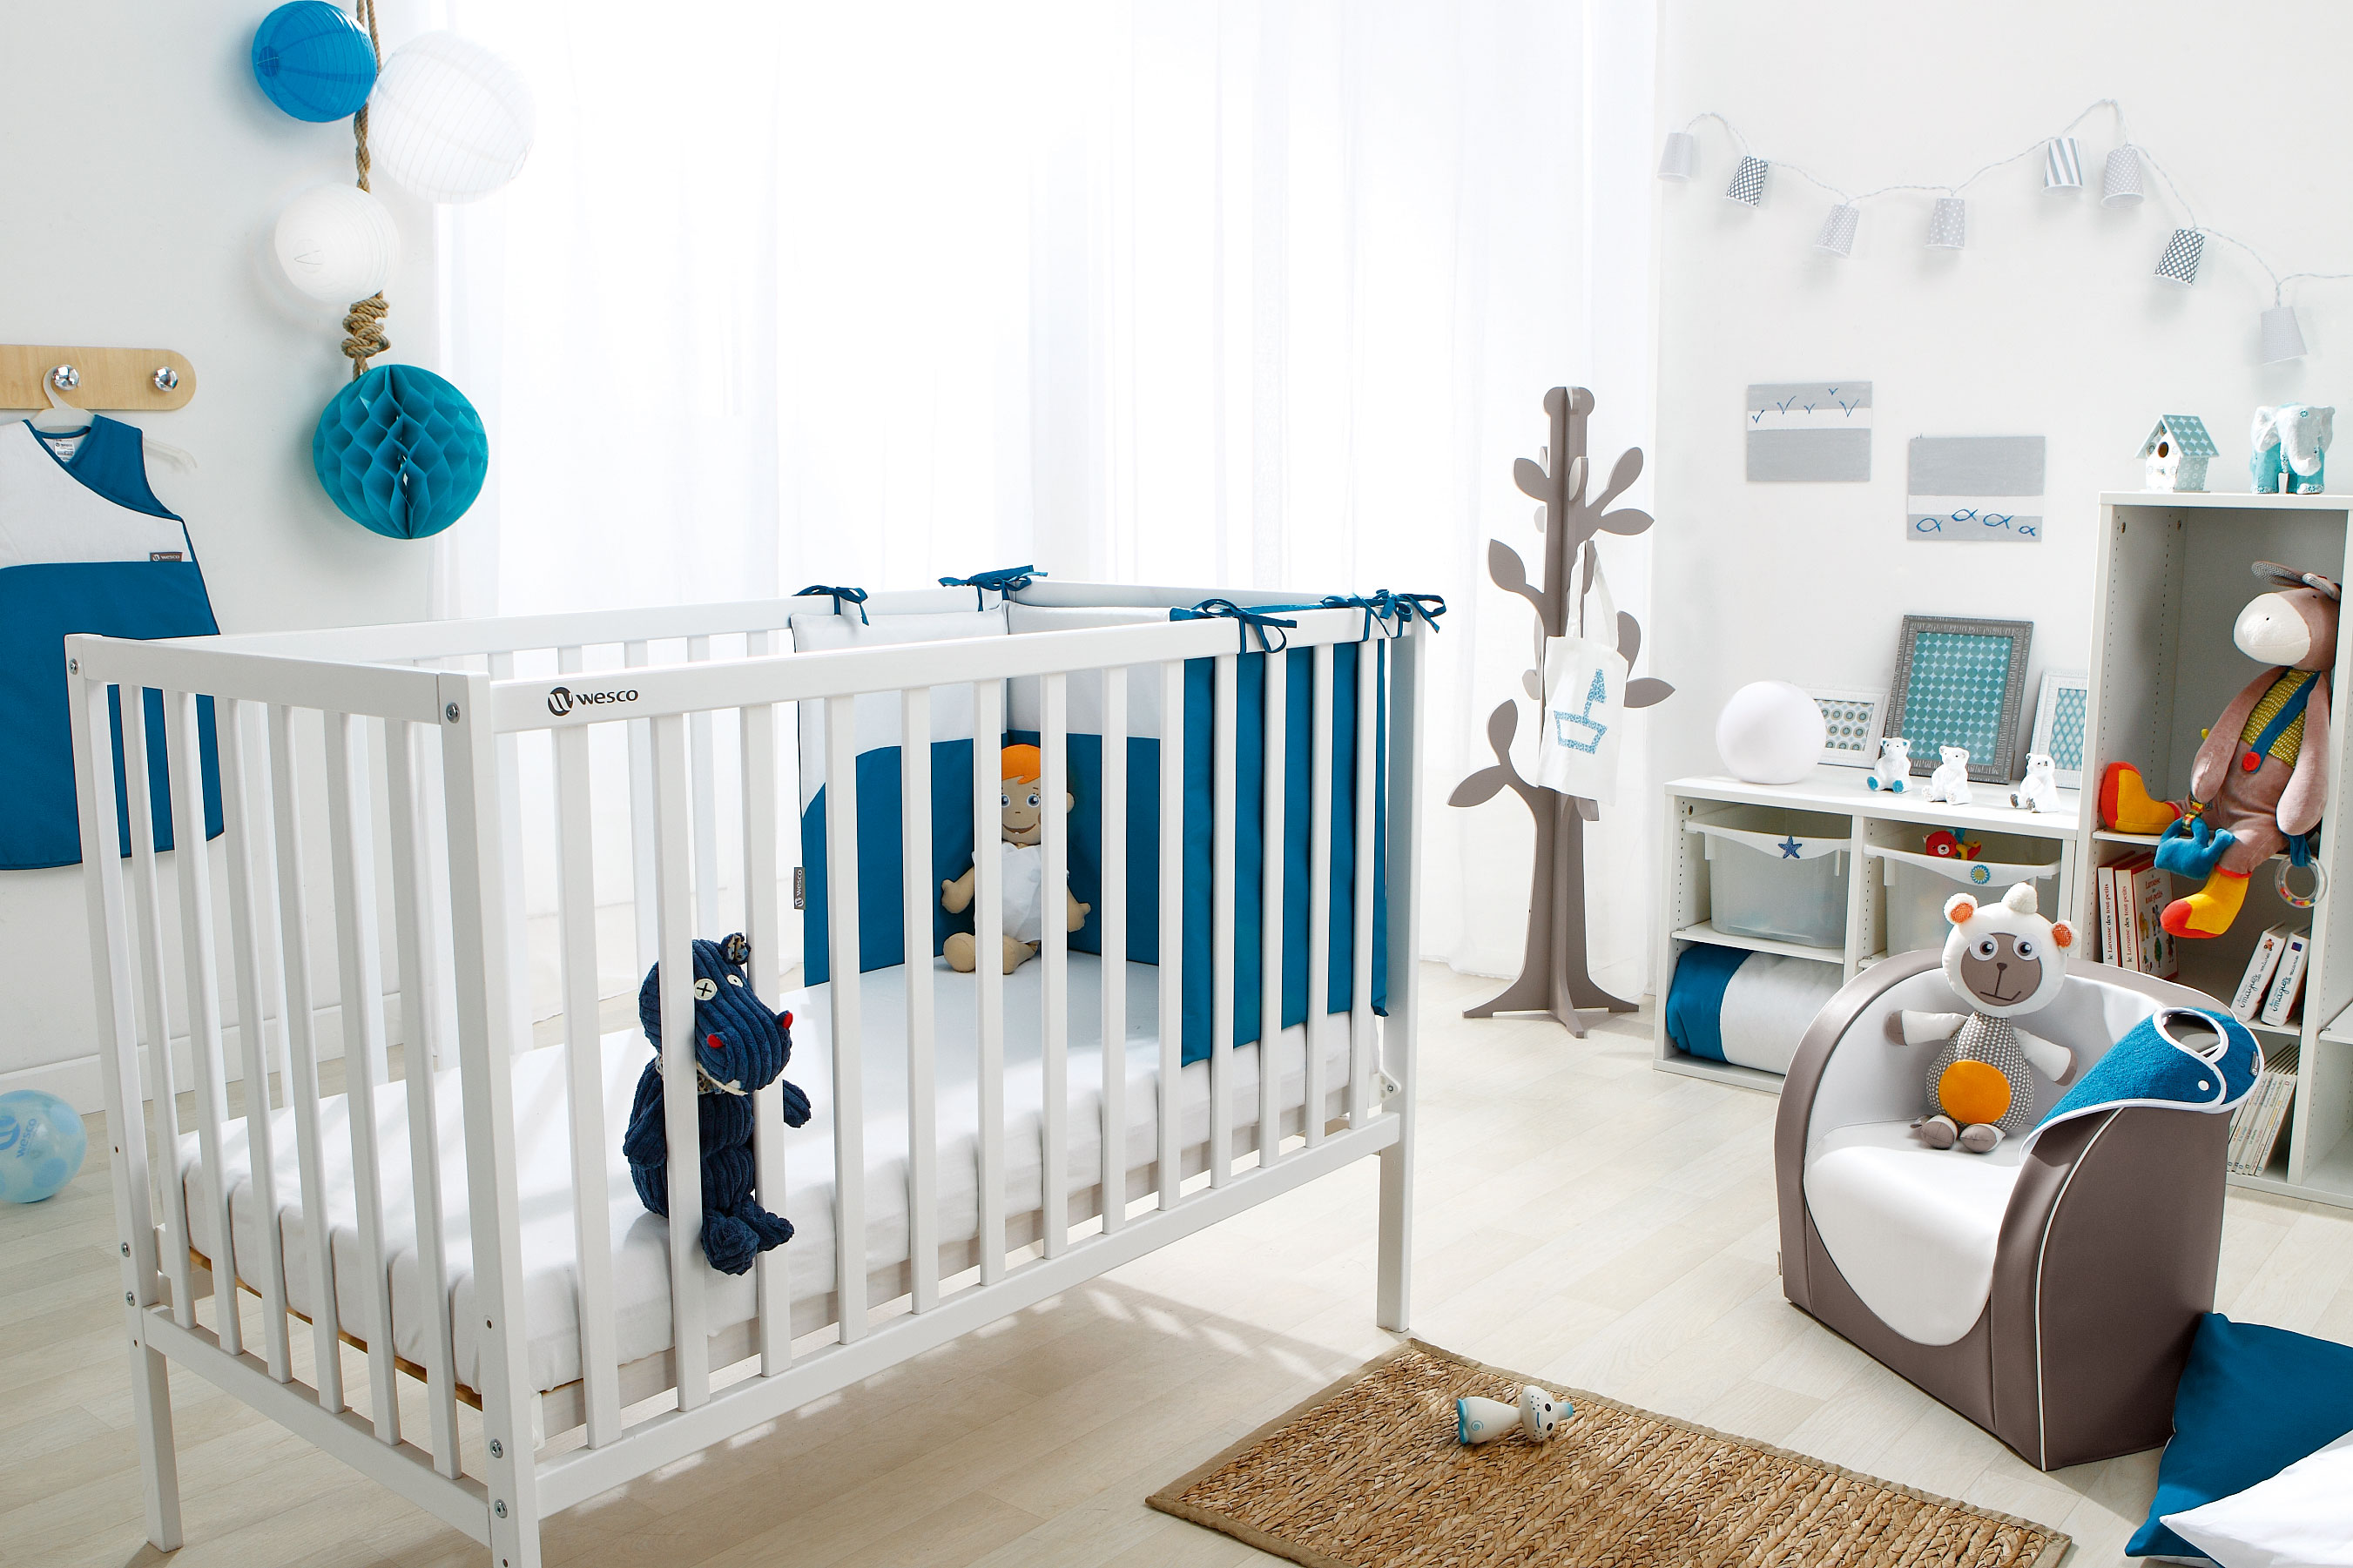 Am nagement d une chambre d enfant le blog wesco for Amenager chambre